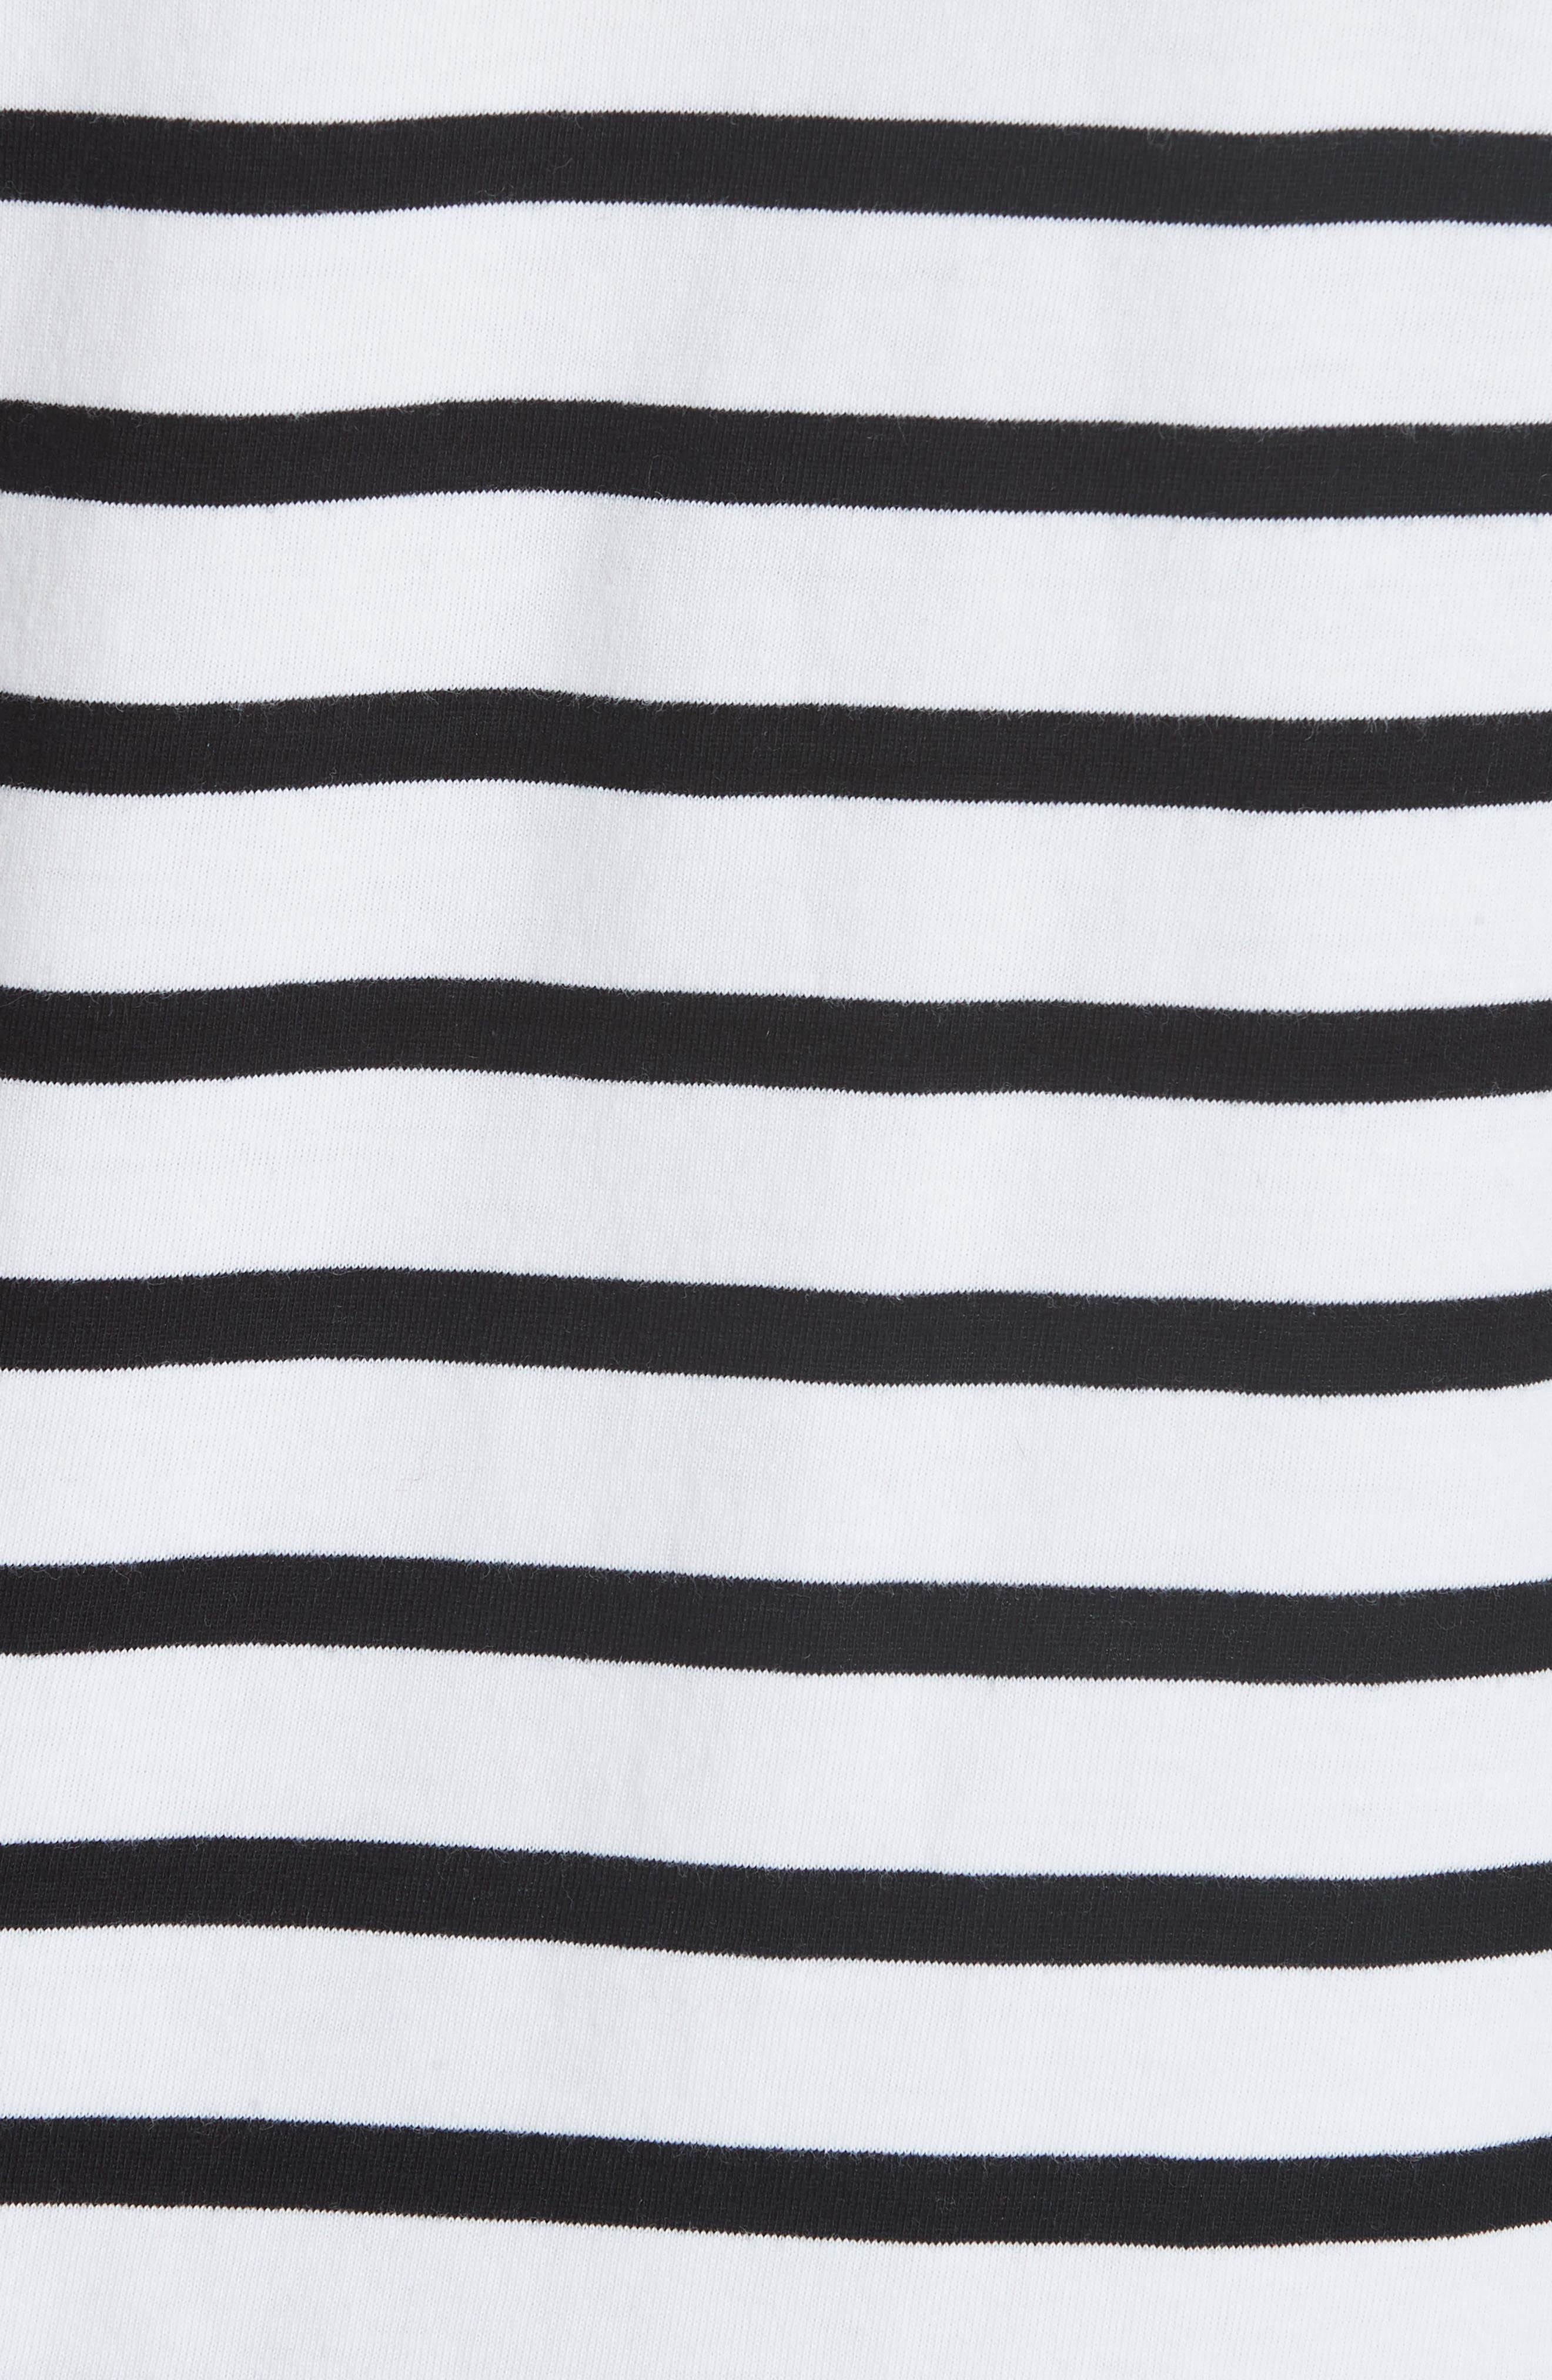 Lean Lines Tee,                             Alternate thumbnail 5, color,                             WHITE AND BLACK STRIPE